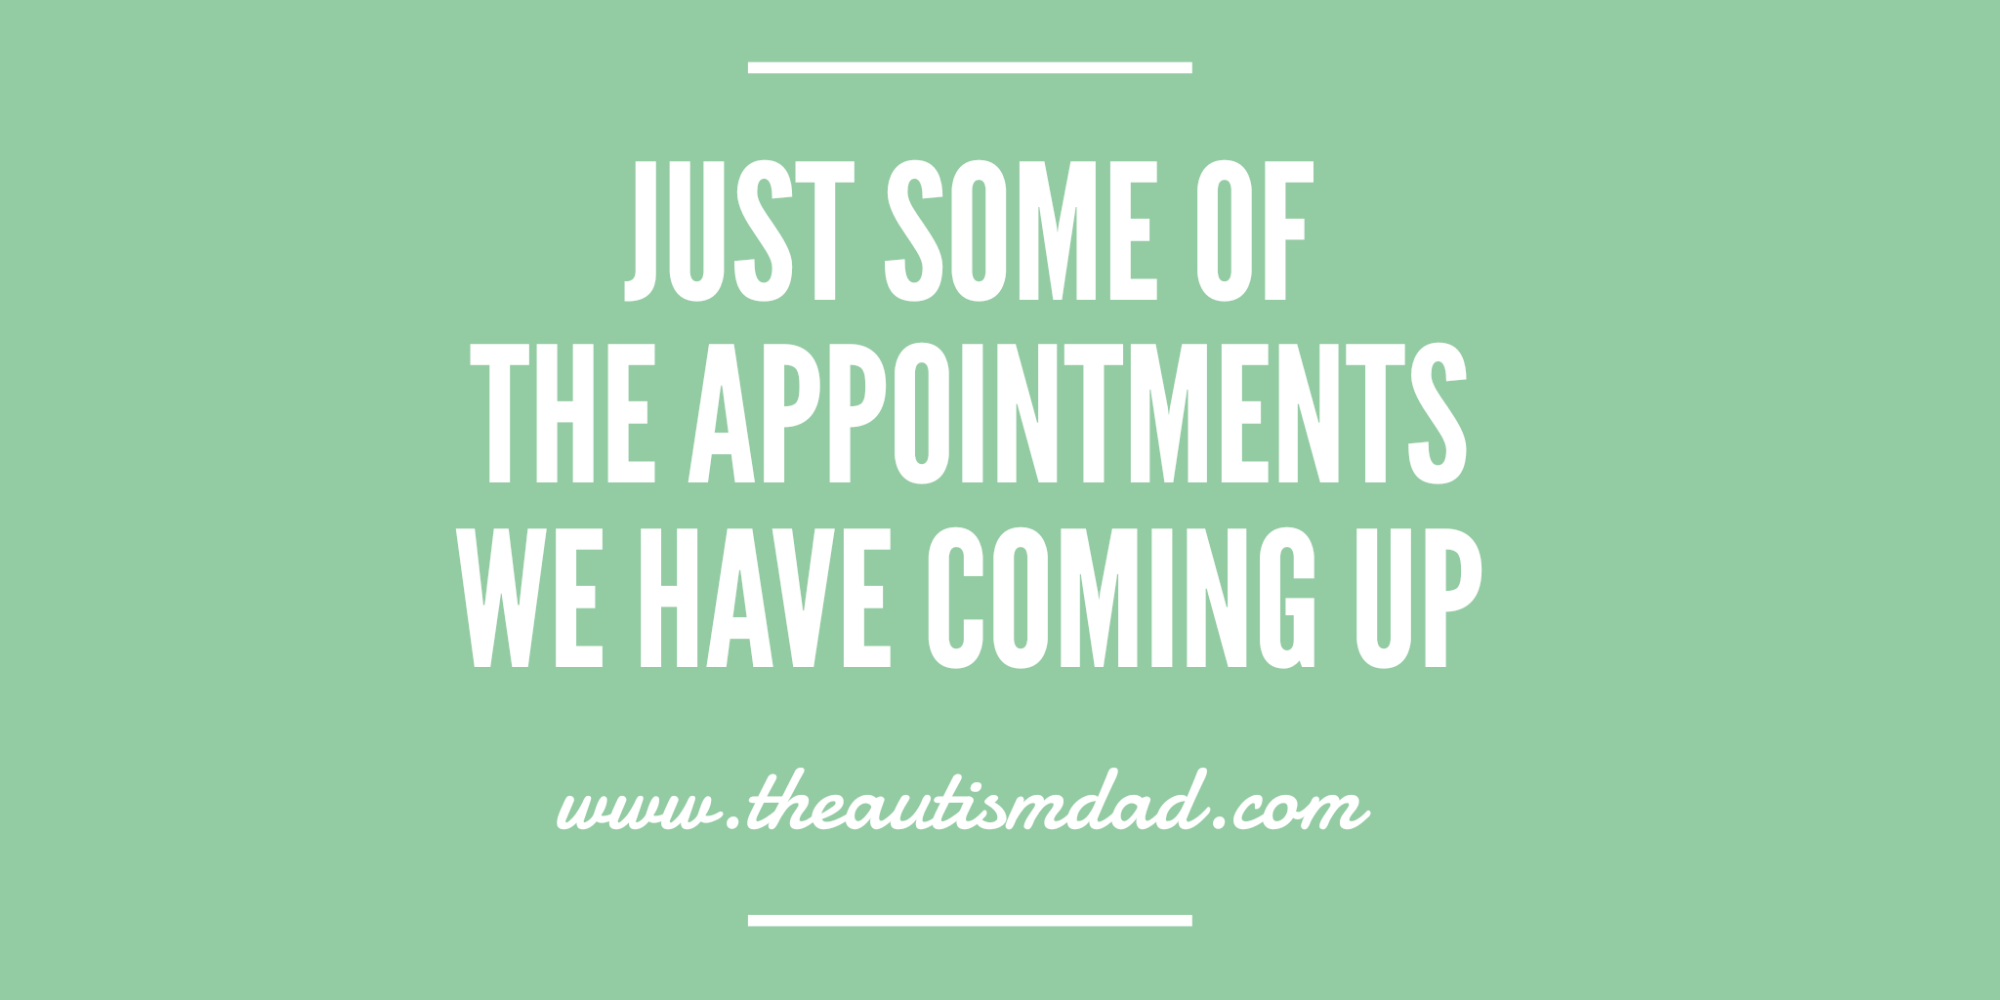 Just some of the appointments we have coming up